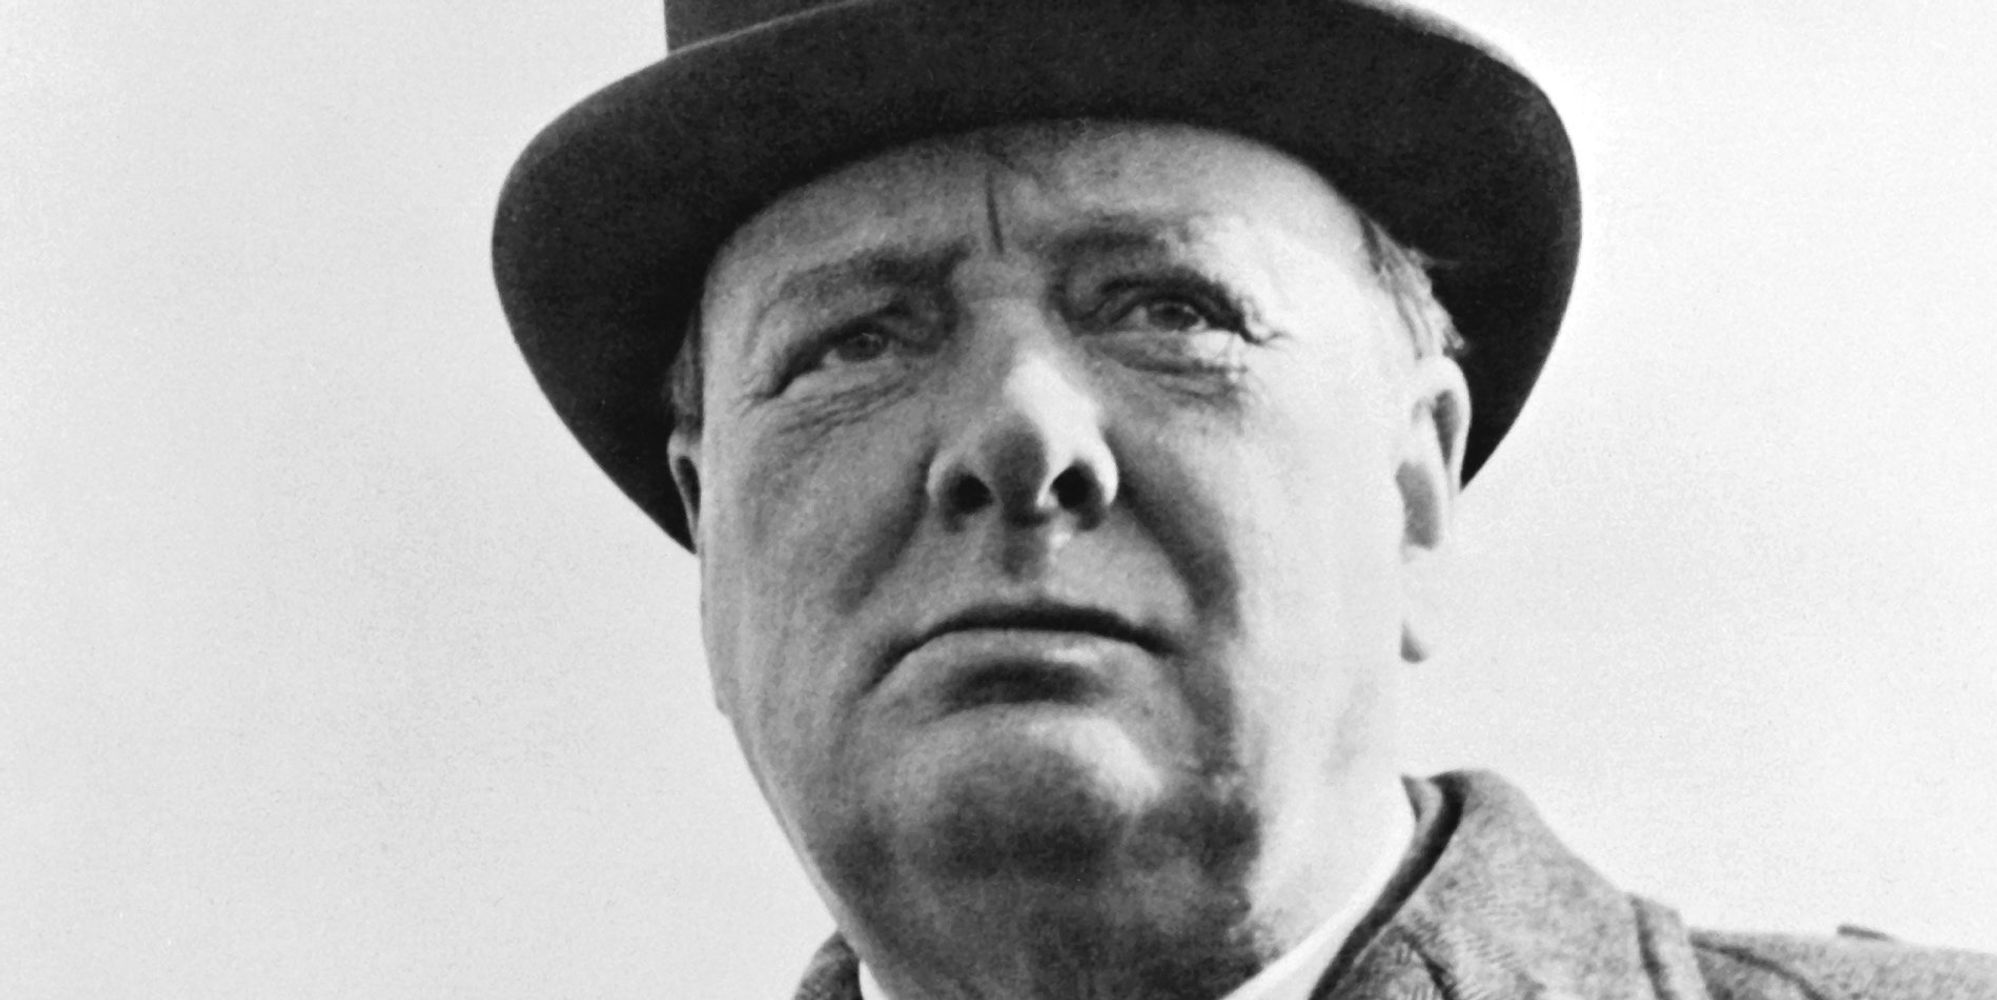 winston churchill contemplates e t s in newly discovered essay winston churchill contemplates e t s in newly discovered essay the huffington post